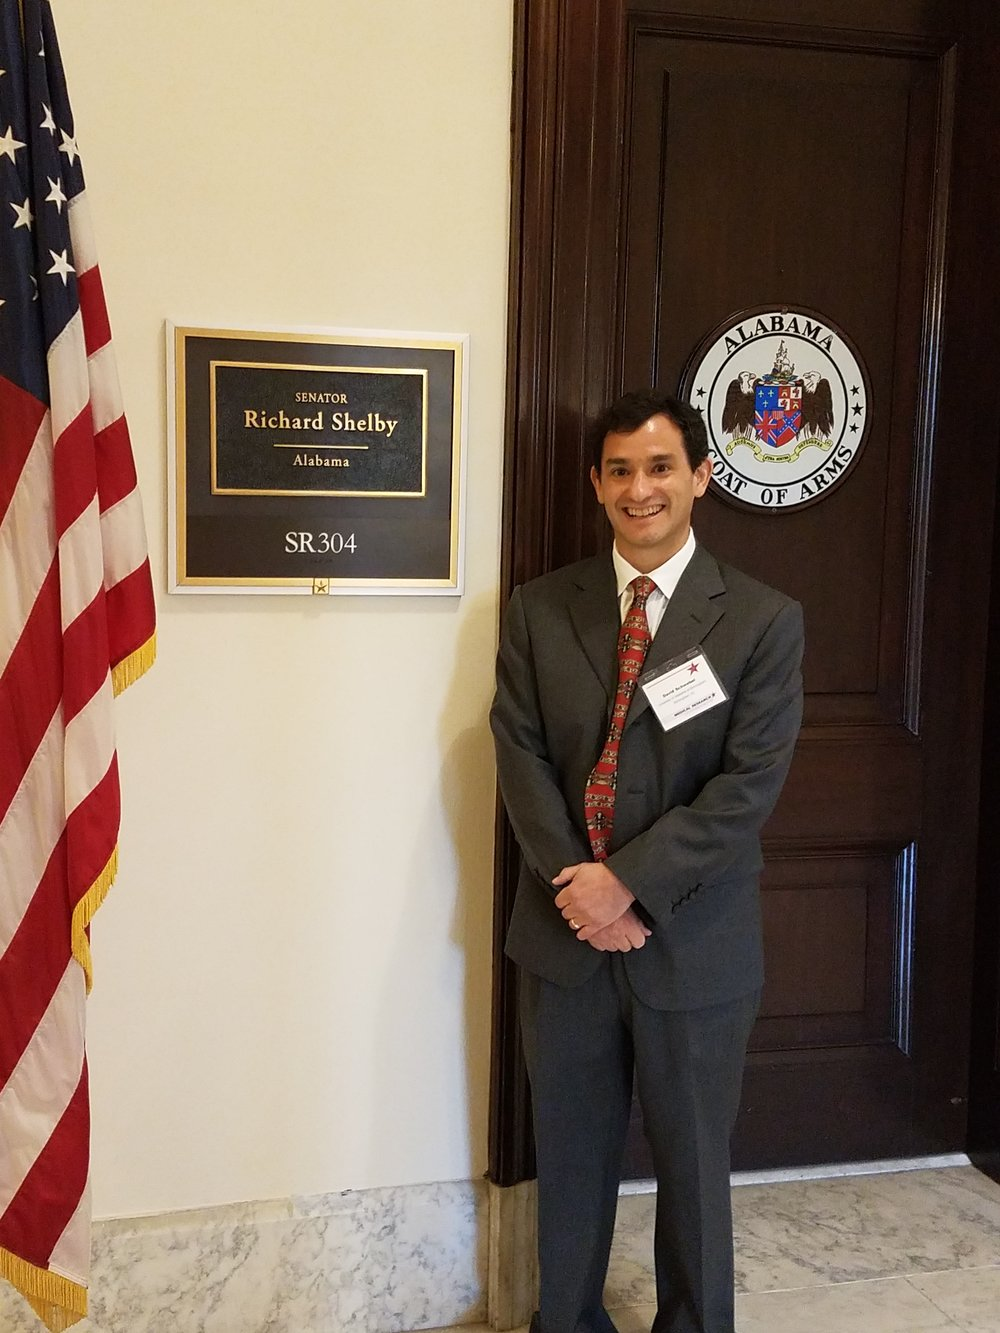 David Schwebel visiting the office of Richard Shelby (R-AL)